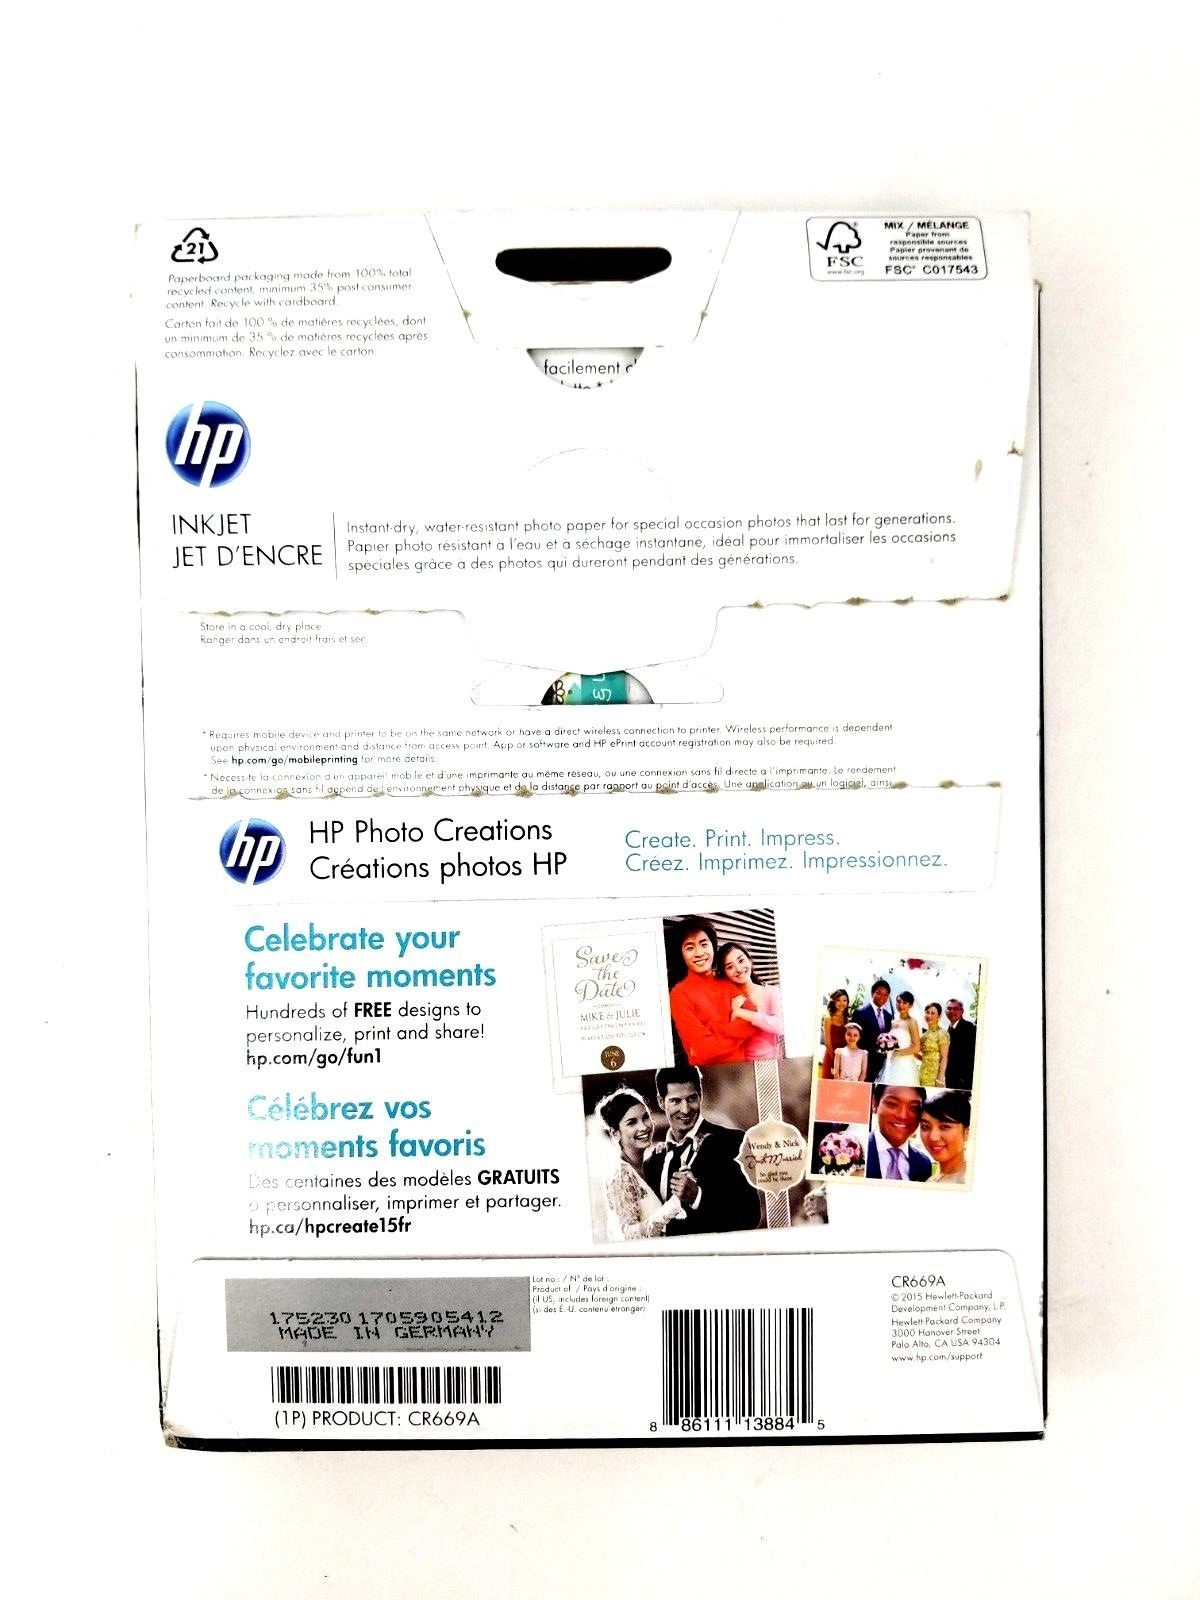 """HP Premium Plus Photo Paper 60 Sheets Glossy Glace 5"""" x 7"""" Model CR669A"""